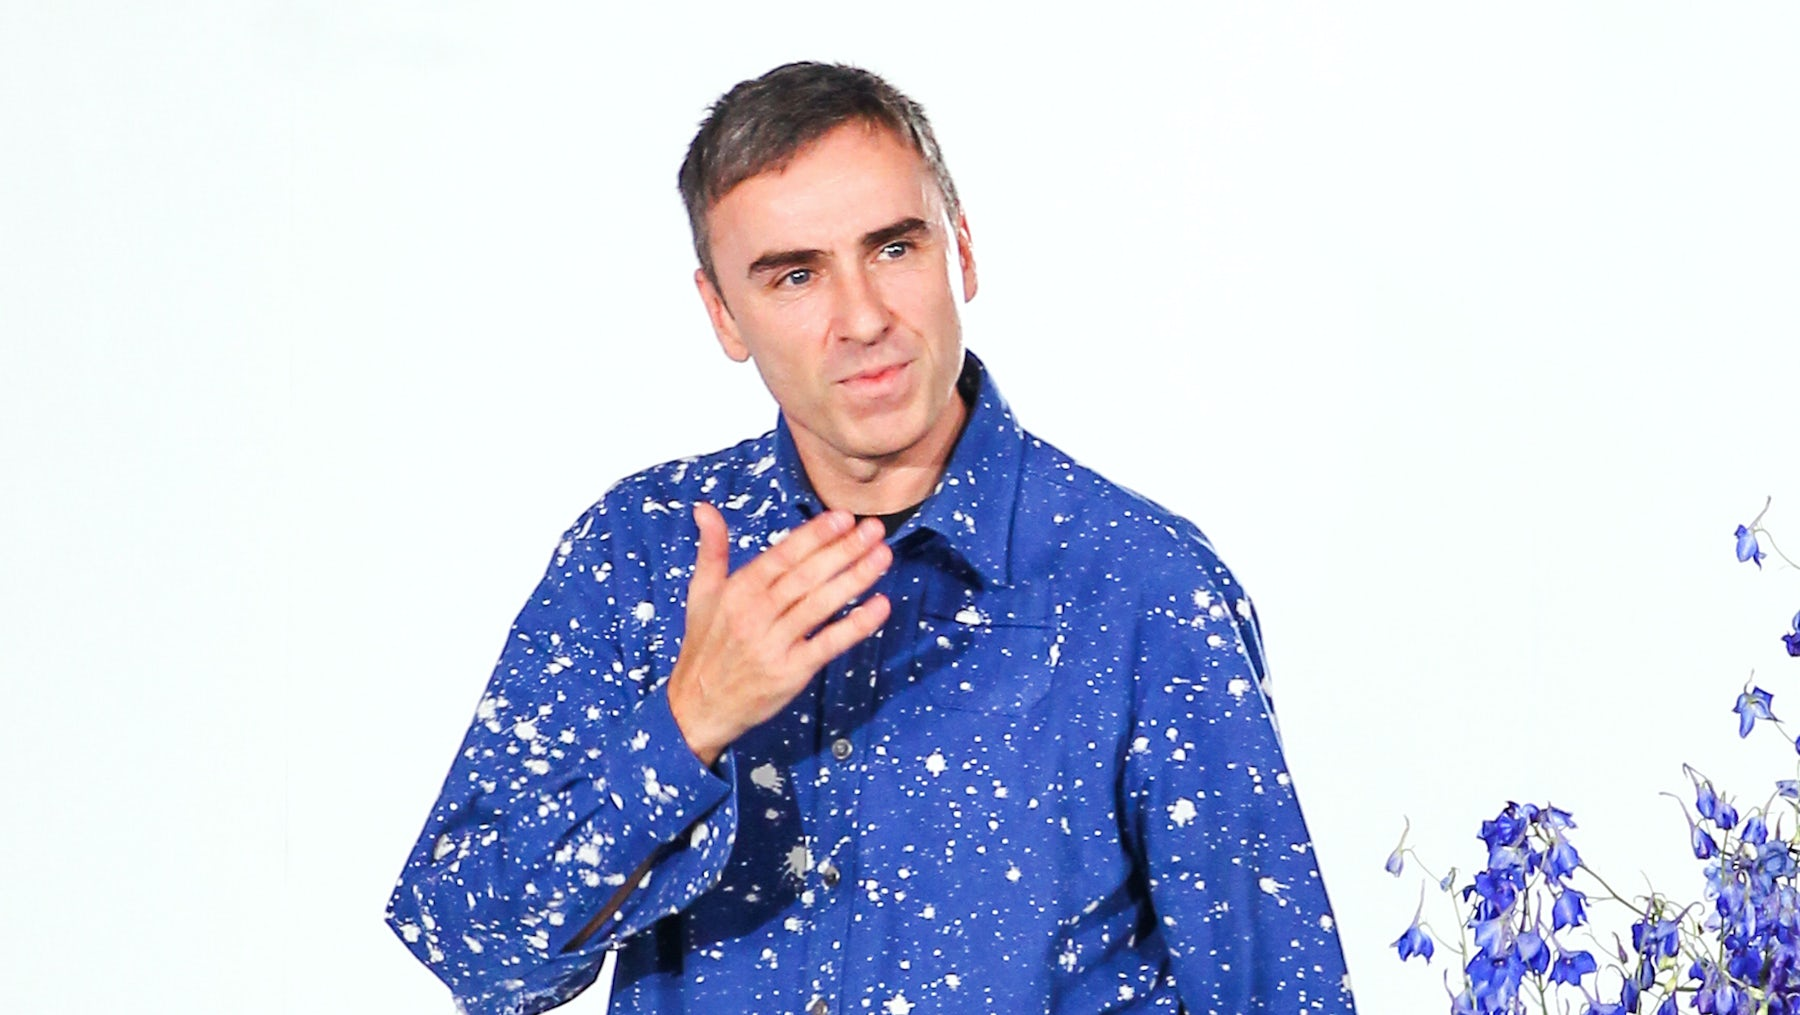 Raf Simons takes his final bow at Dior's Spring/Summer 2016 show | Source: Shutterstock